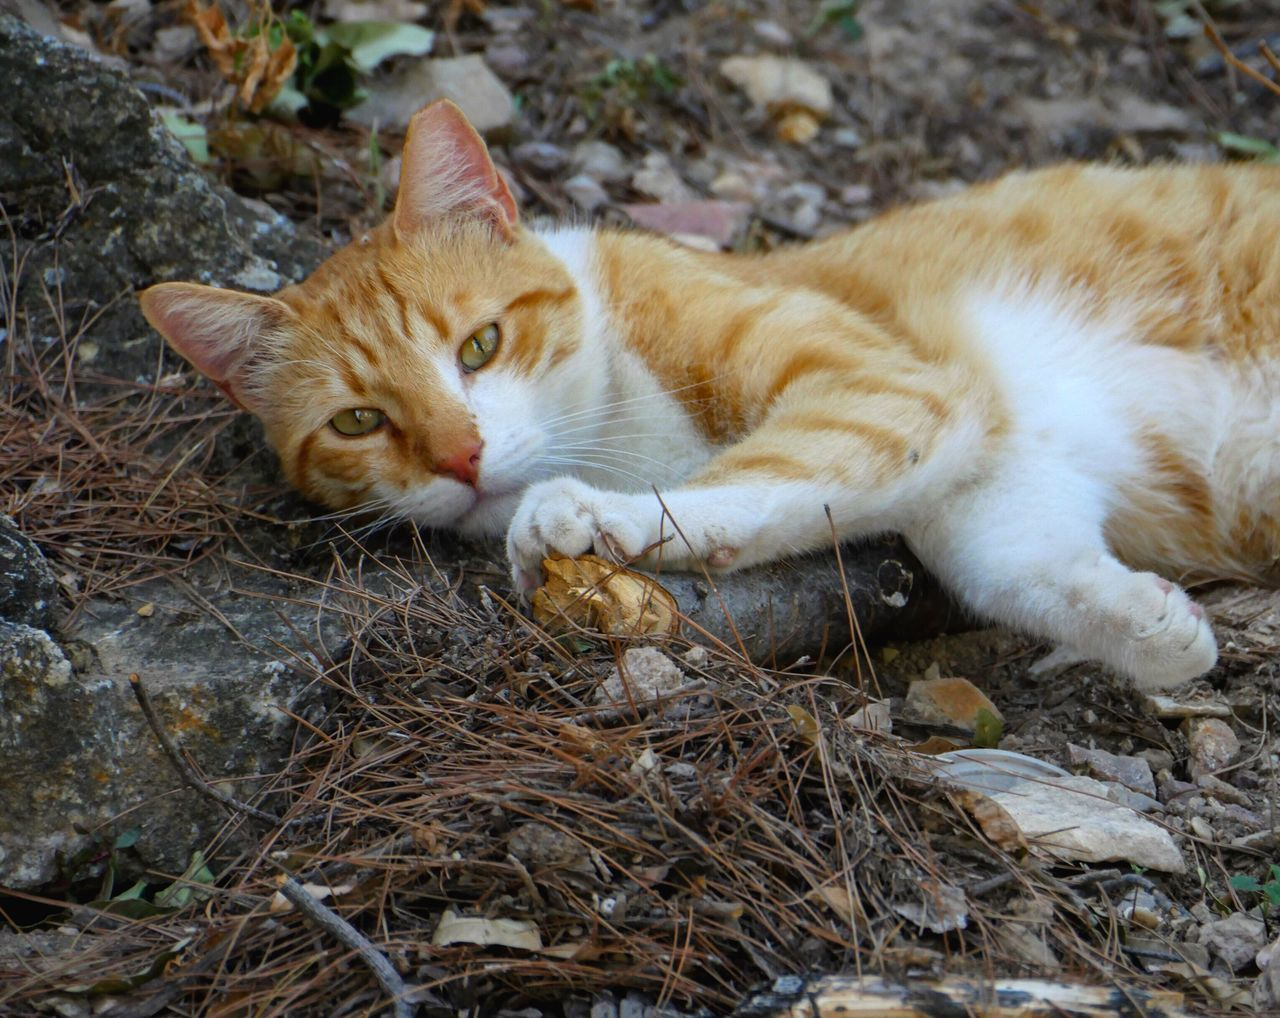 cat, feline, domestic, pets, domestic cat, domestic animals, animal themes, animal, one animal, vertebrate, mammal, relaxation, looking at camera, portrait, no people, day, nature, whisker, field, land, ginger cat, animal head, animal eye